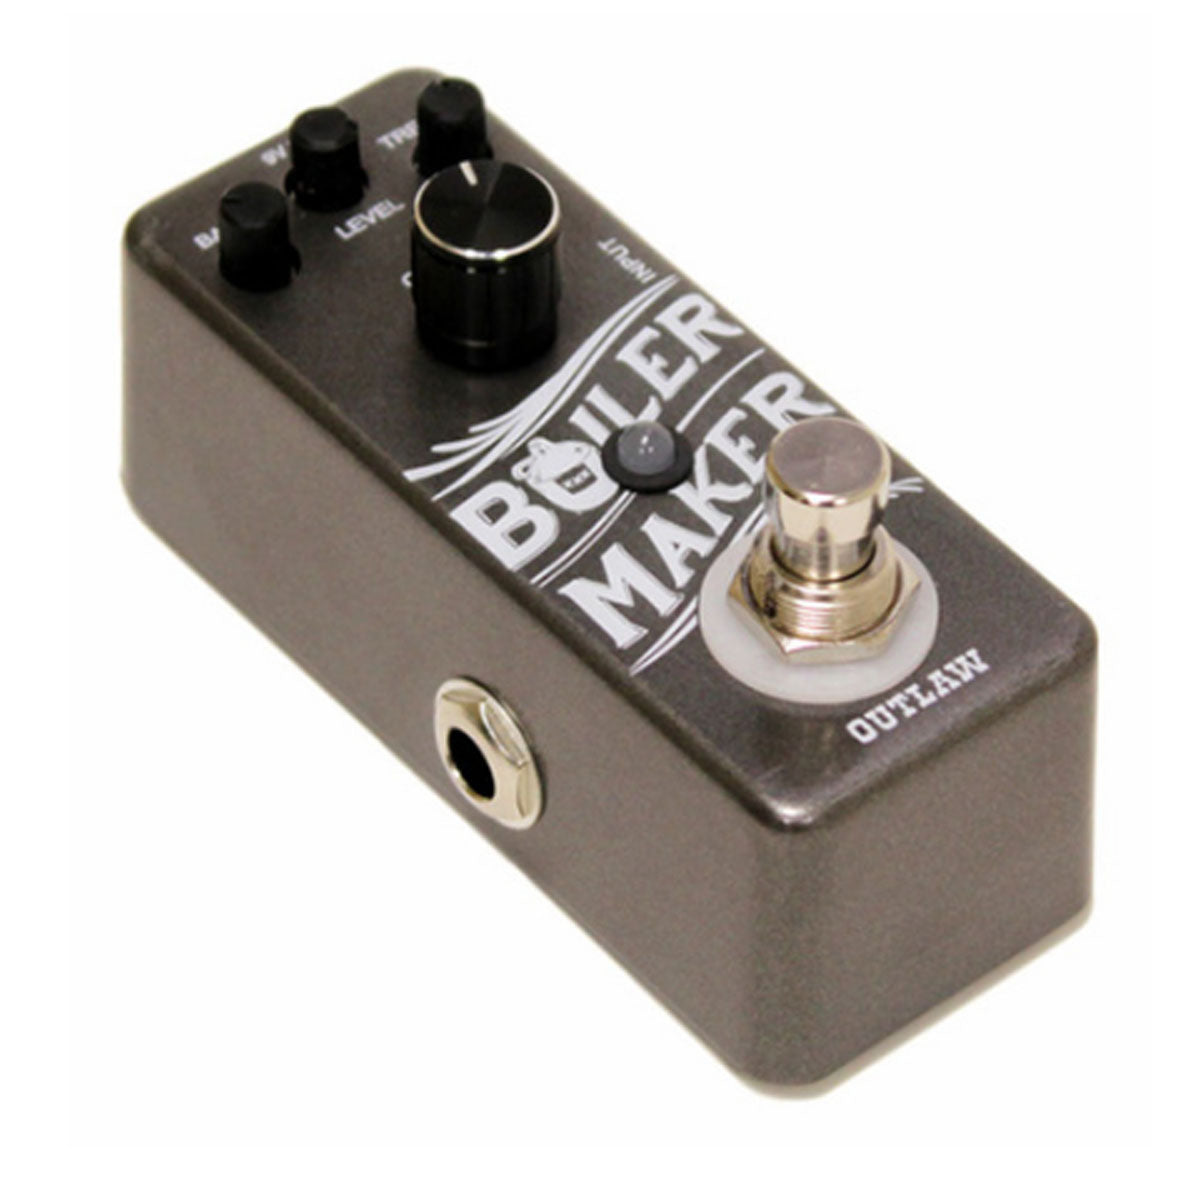 Outlaw Effects Boilermaker Boost Pedal